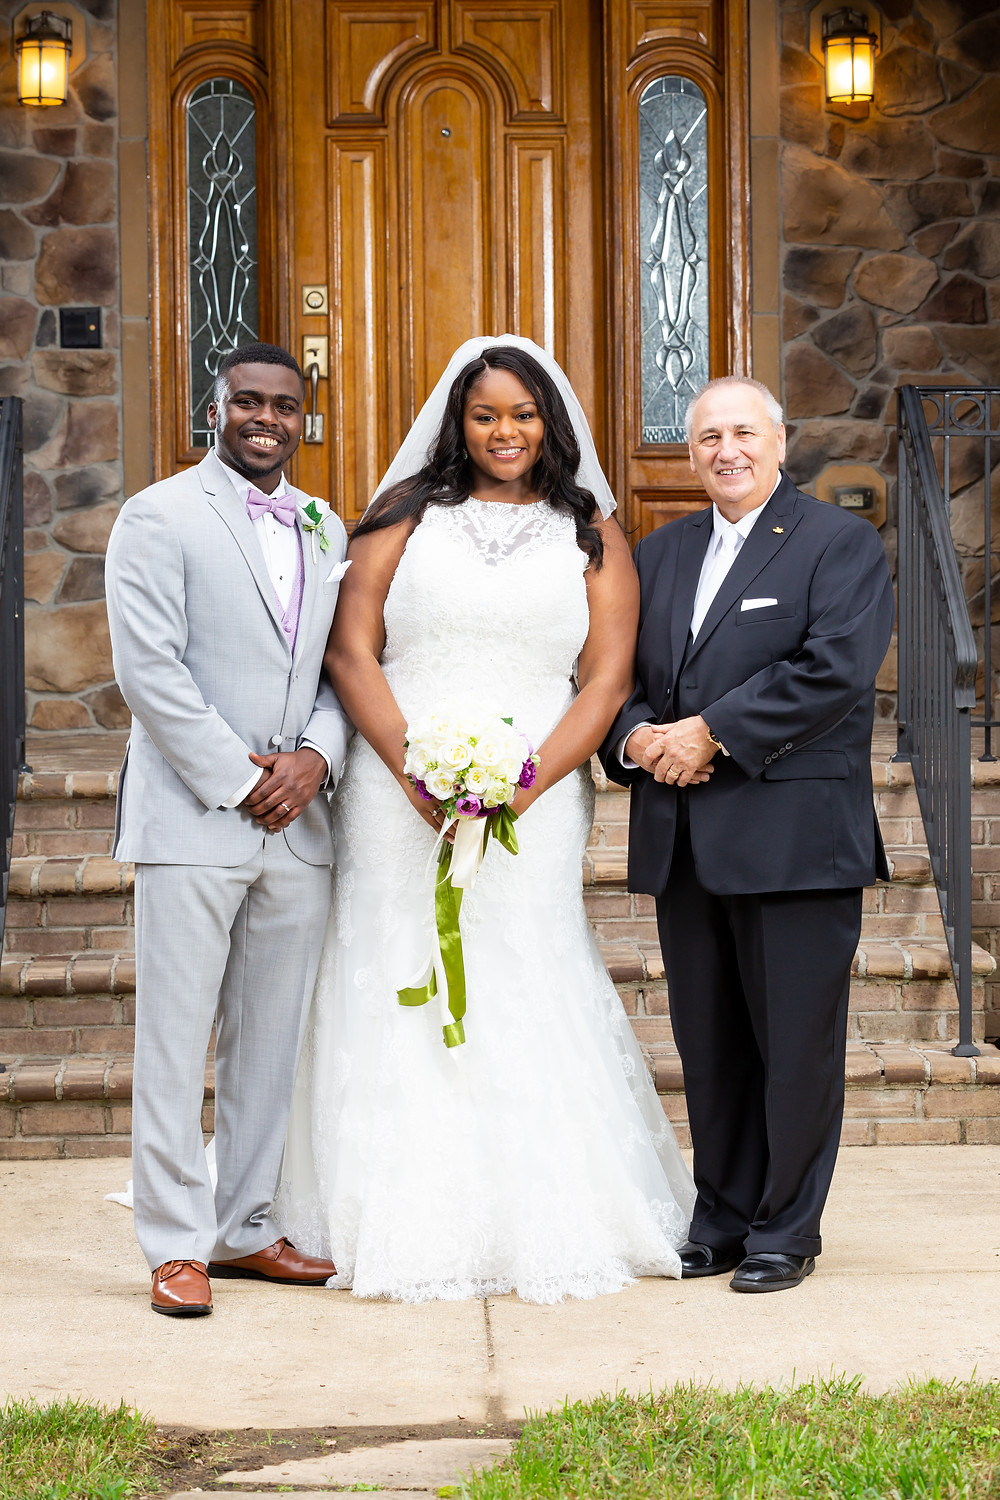 John and Jordyn posing with the pastor after the wedding ceremony in Fairfax, Virginia.